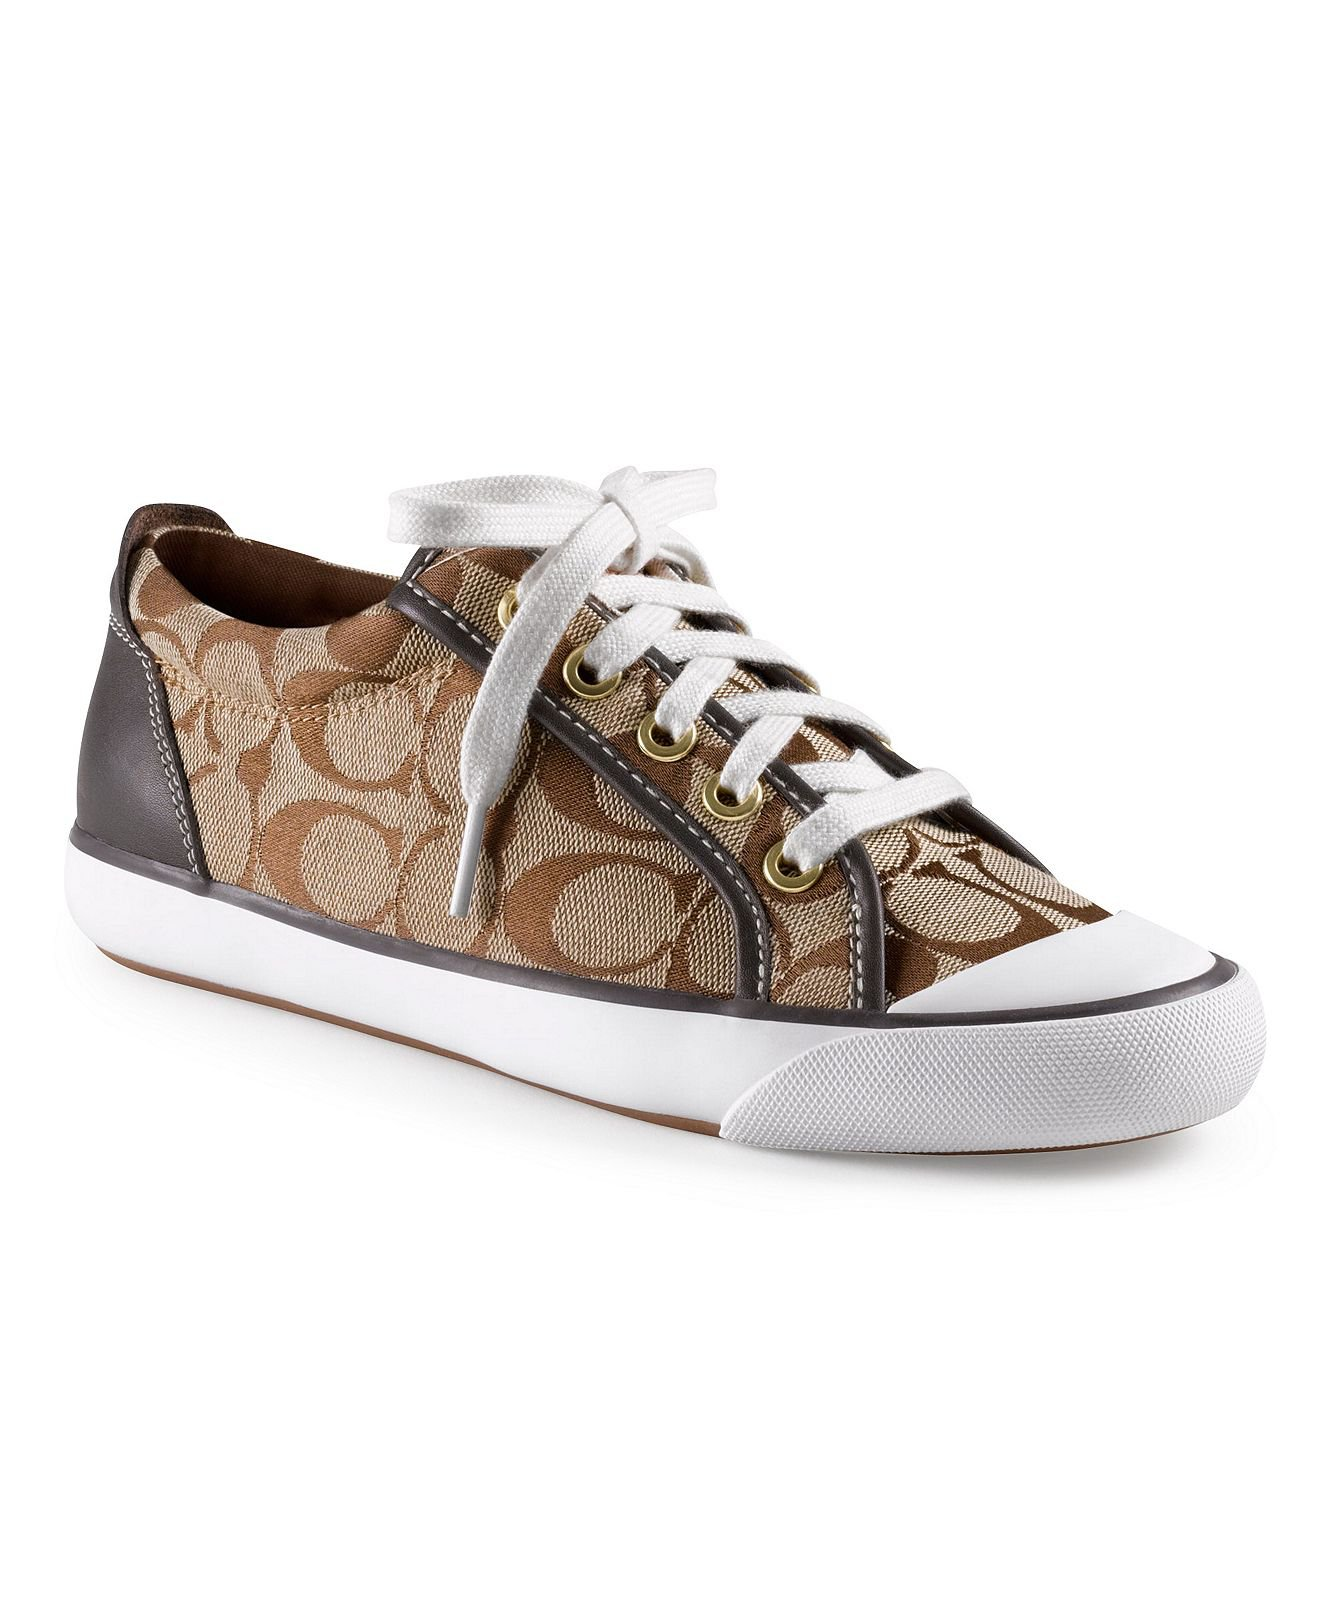 COACH BARRETT SNEAKER  Coach Shoes  from Macys